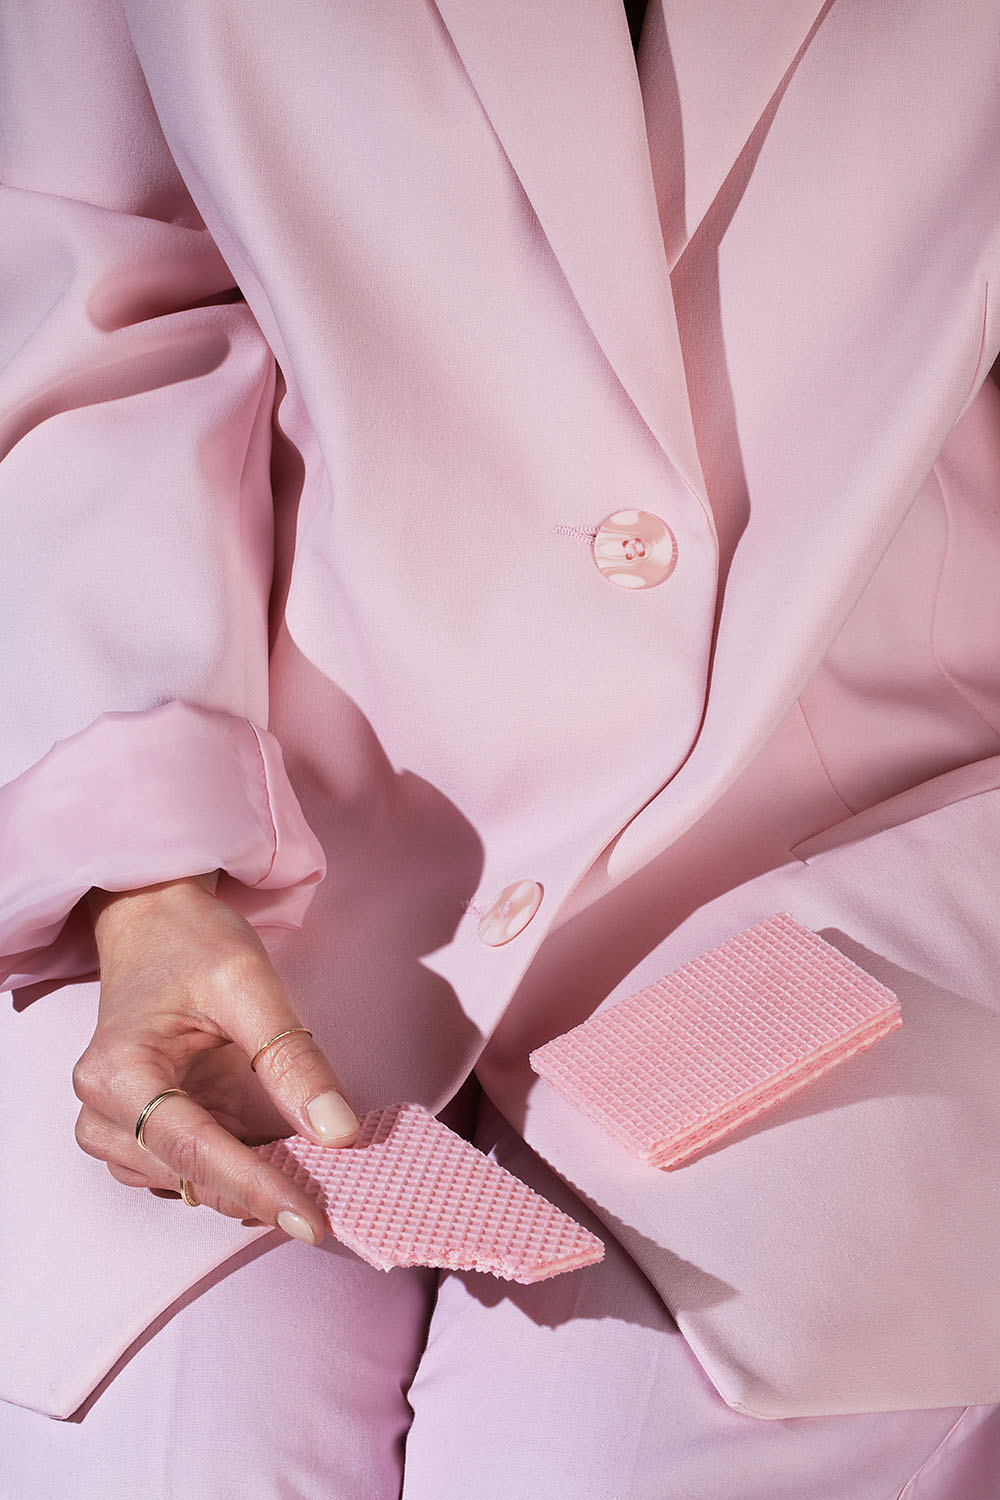 wardrobe-snacks-pink-wafer.jpg